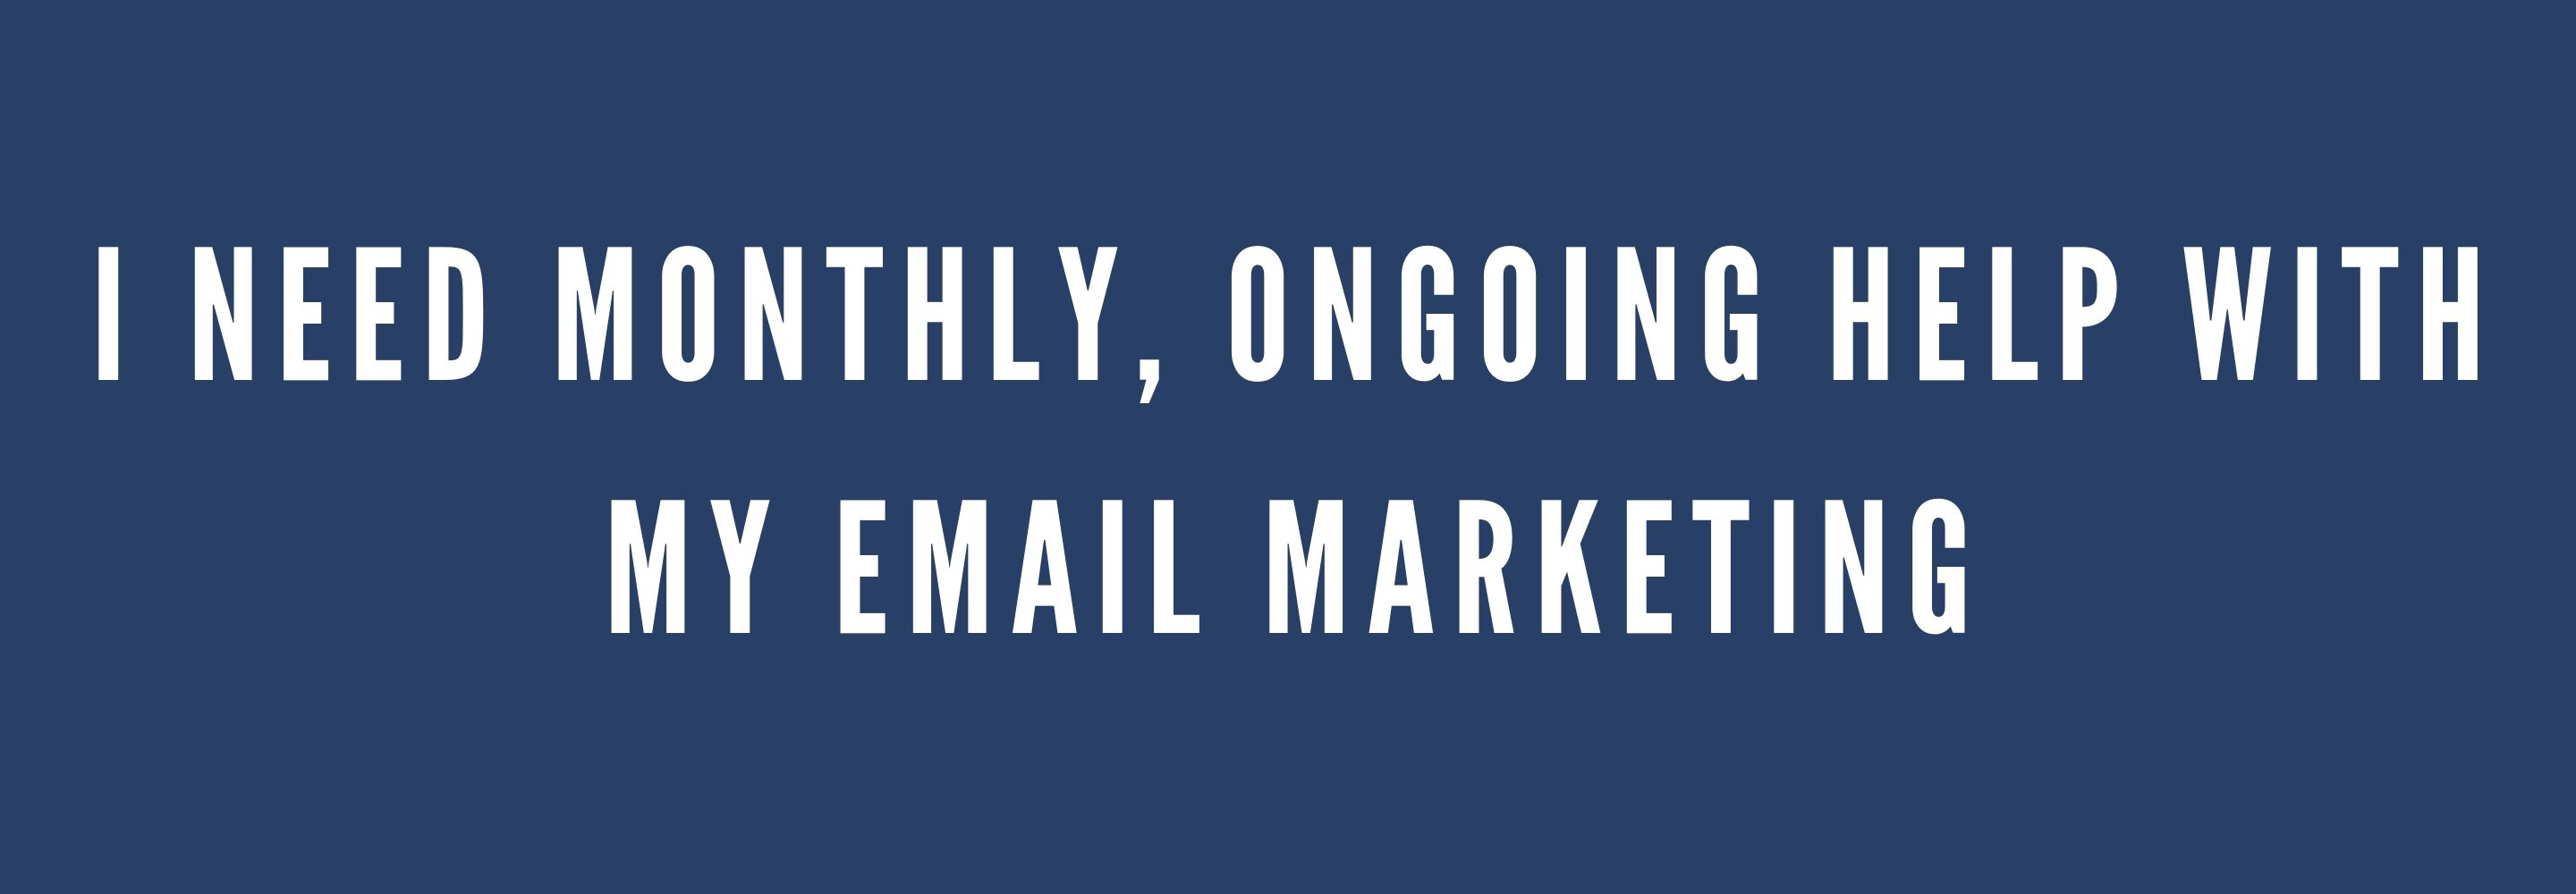 I need monthly ongoing help with my email marekting